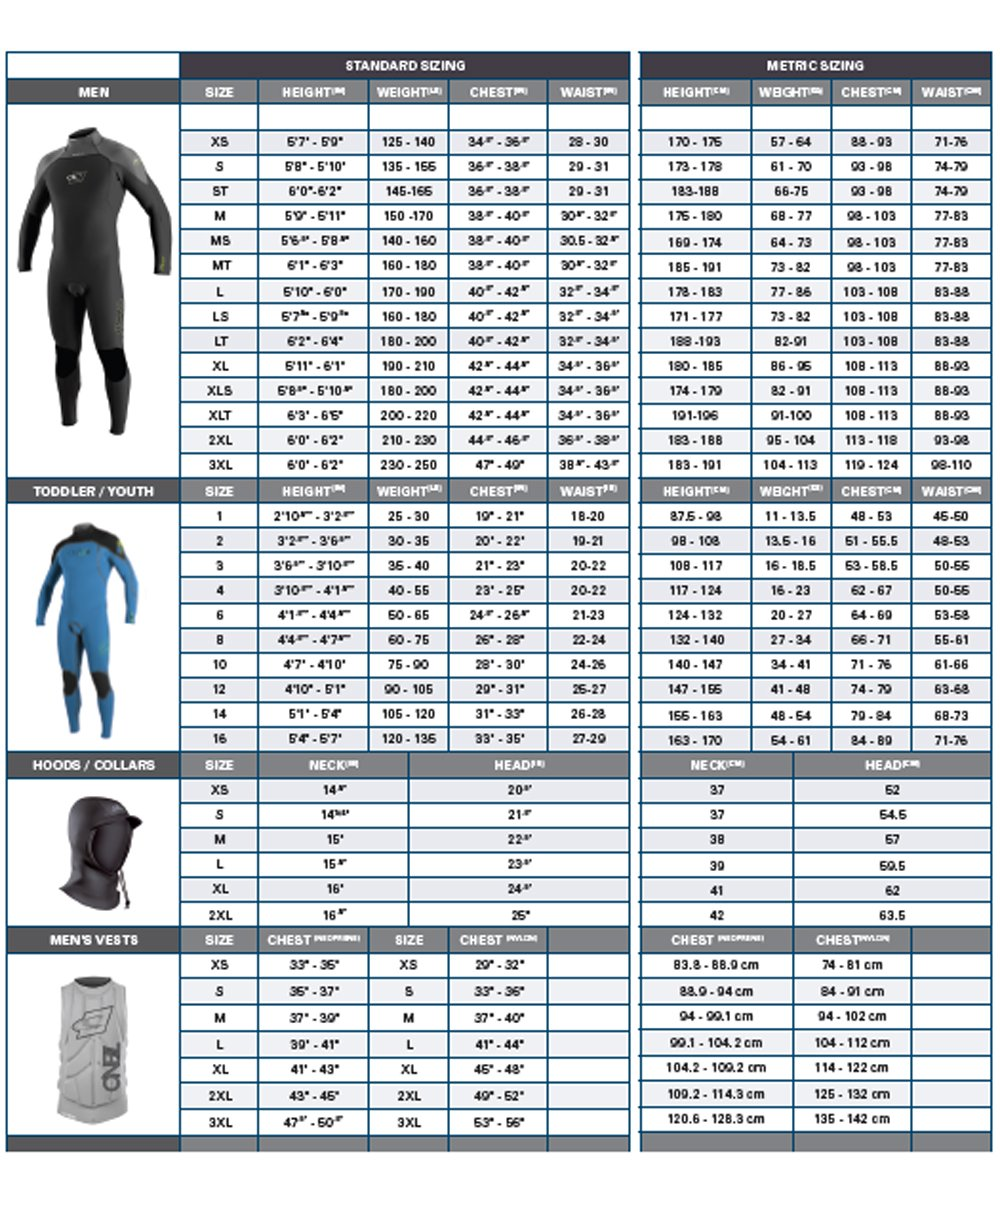 O'Neill Men's Dive J-Type 7mm Back Zip Full Wetsuit with Hood, Black, Large Short by O'Neill Wetsuits (Image #6)